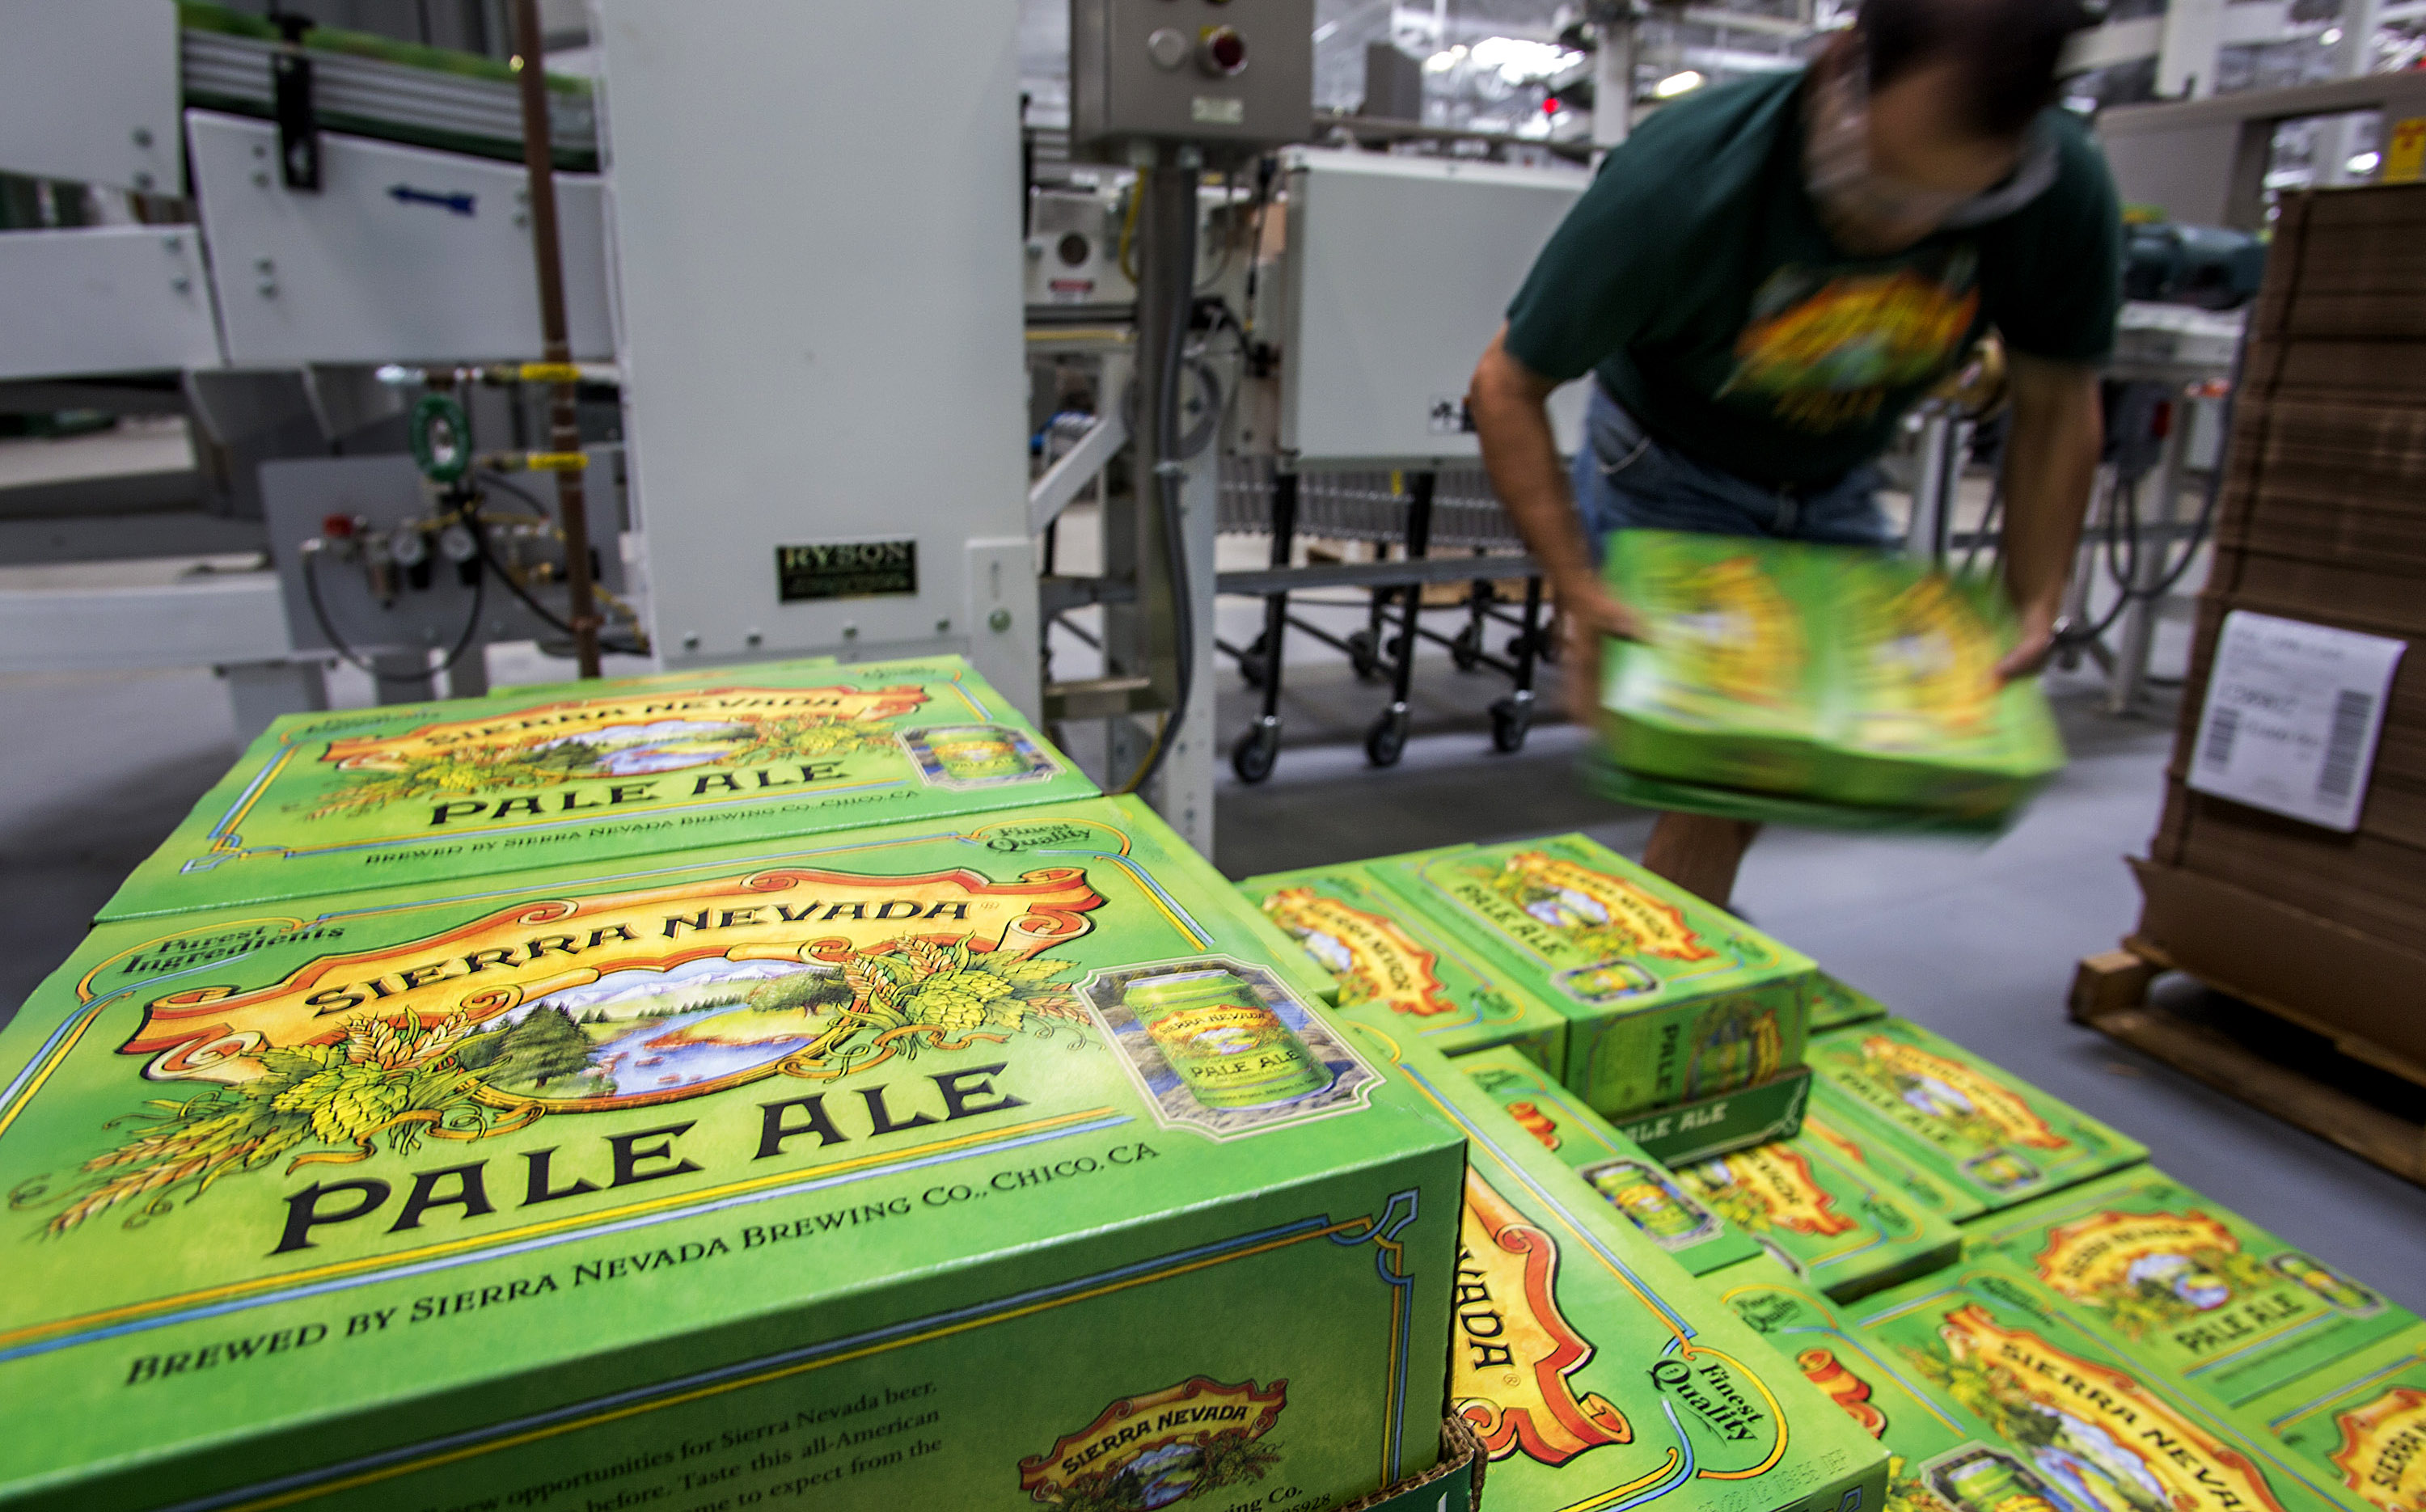 Sierra Nevada Brewing Co. Manufactures New Canned Line